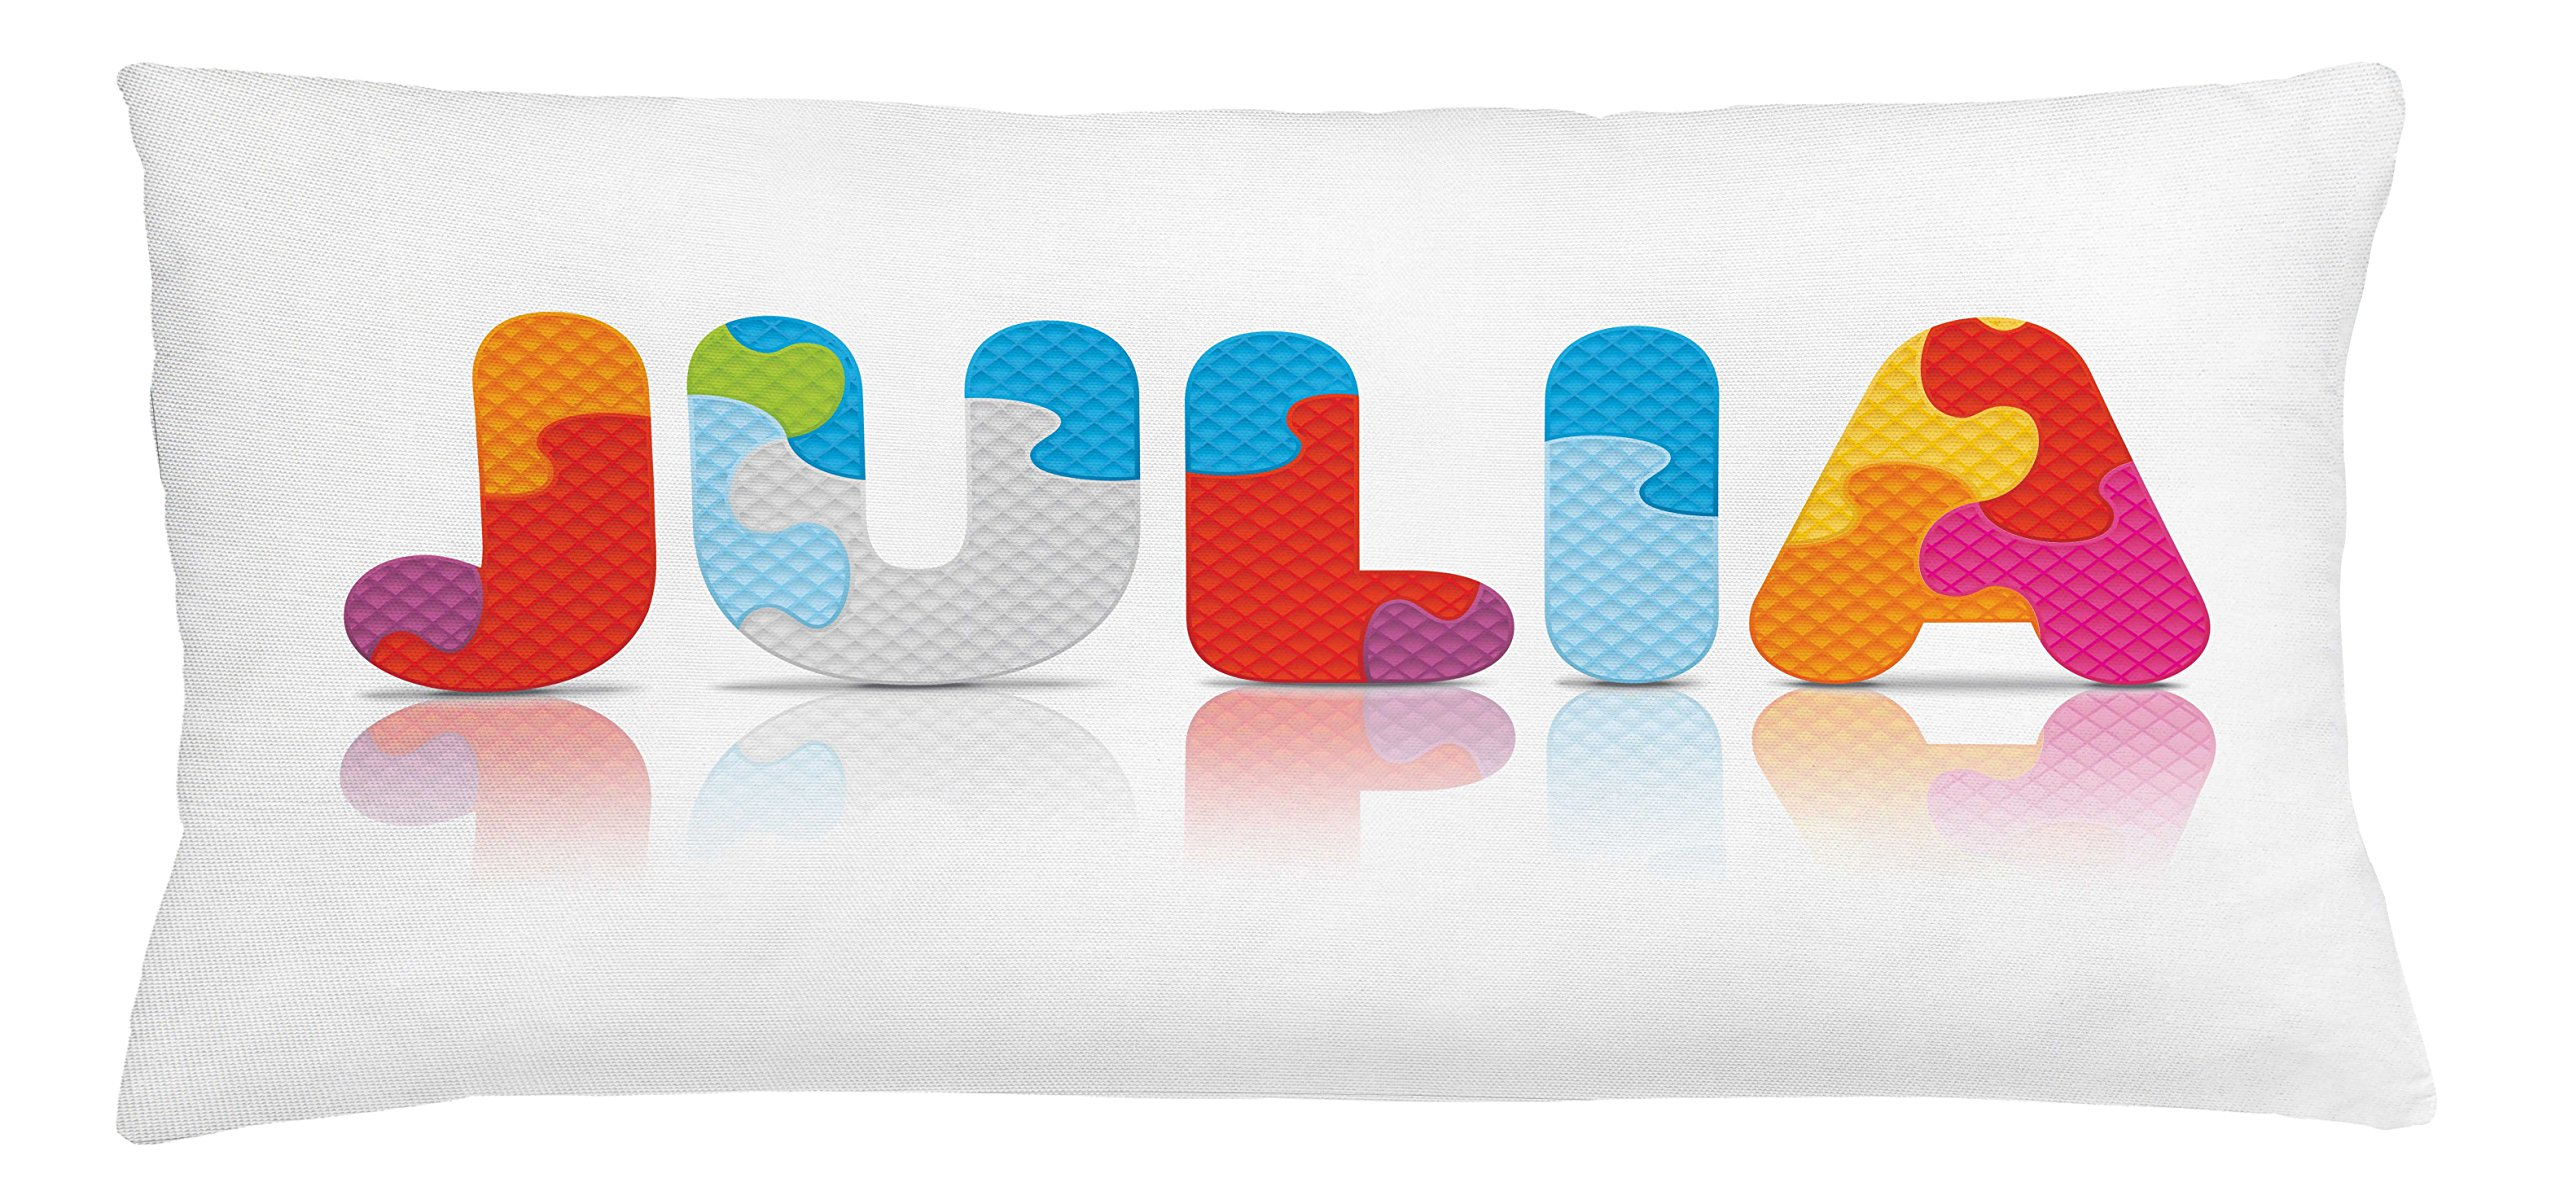 Ambesonne Julia Throw Pillow Cushion Cover, Puzzle Style Colorful Letters Preschool Theme Girl Name with Roman Mythology Roots, Decorative Square Accent Pillow Case, 36 X 16 Inches, Multicolor